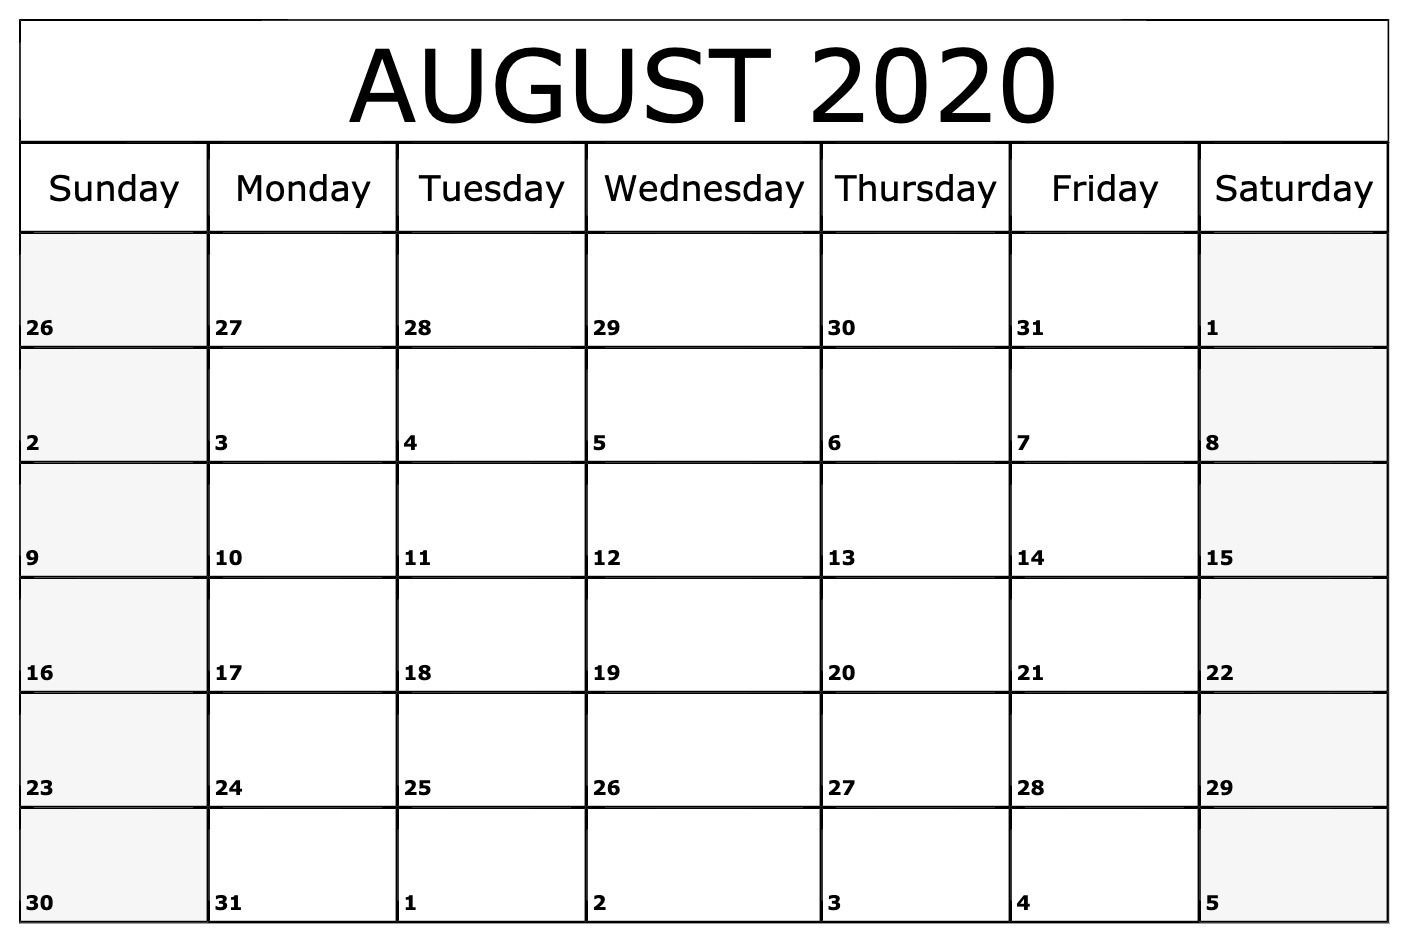 August 2020 Calendar Template | Monthly Calendars | Monthly intended for August 2020 Calendar Printable